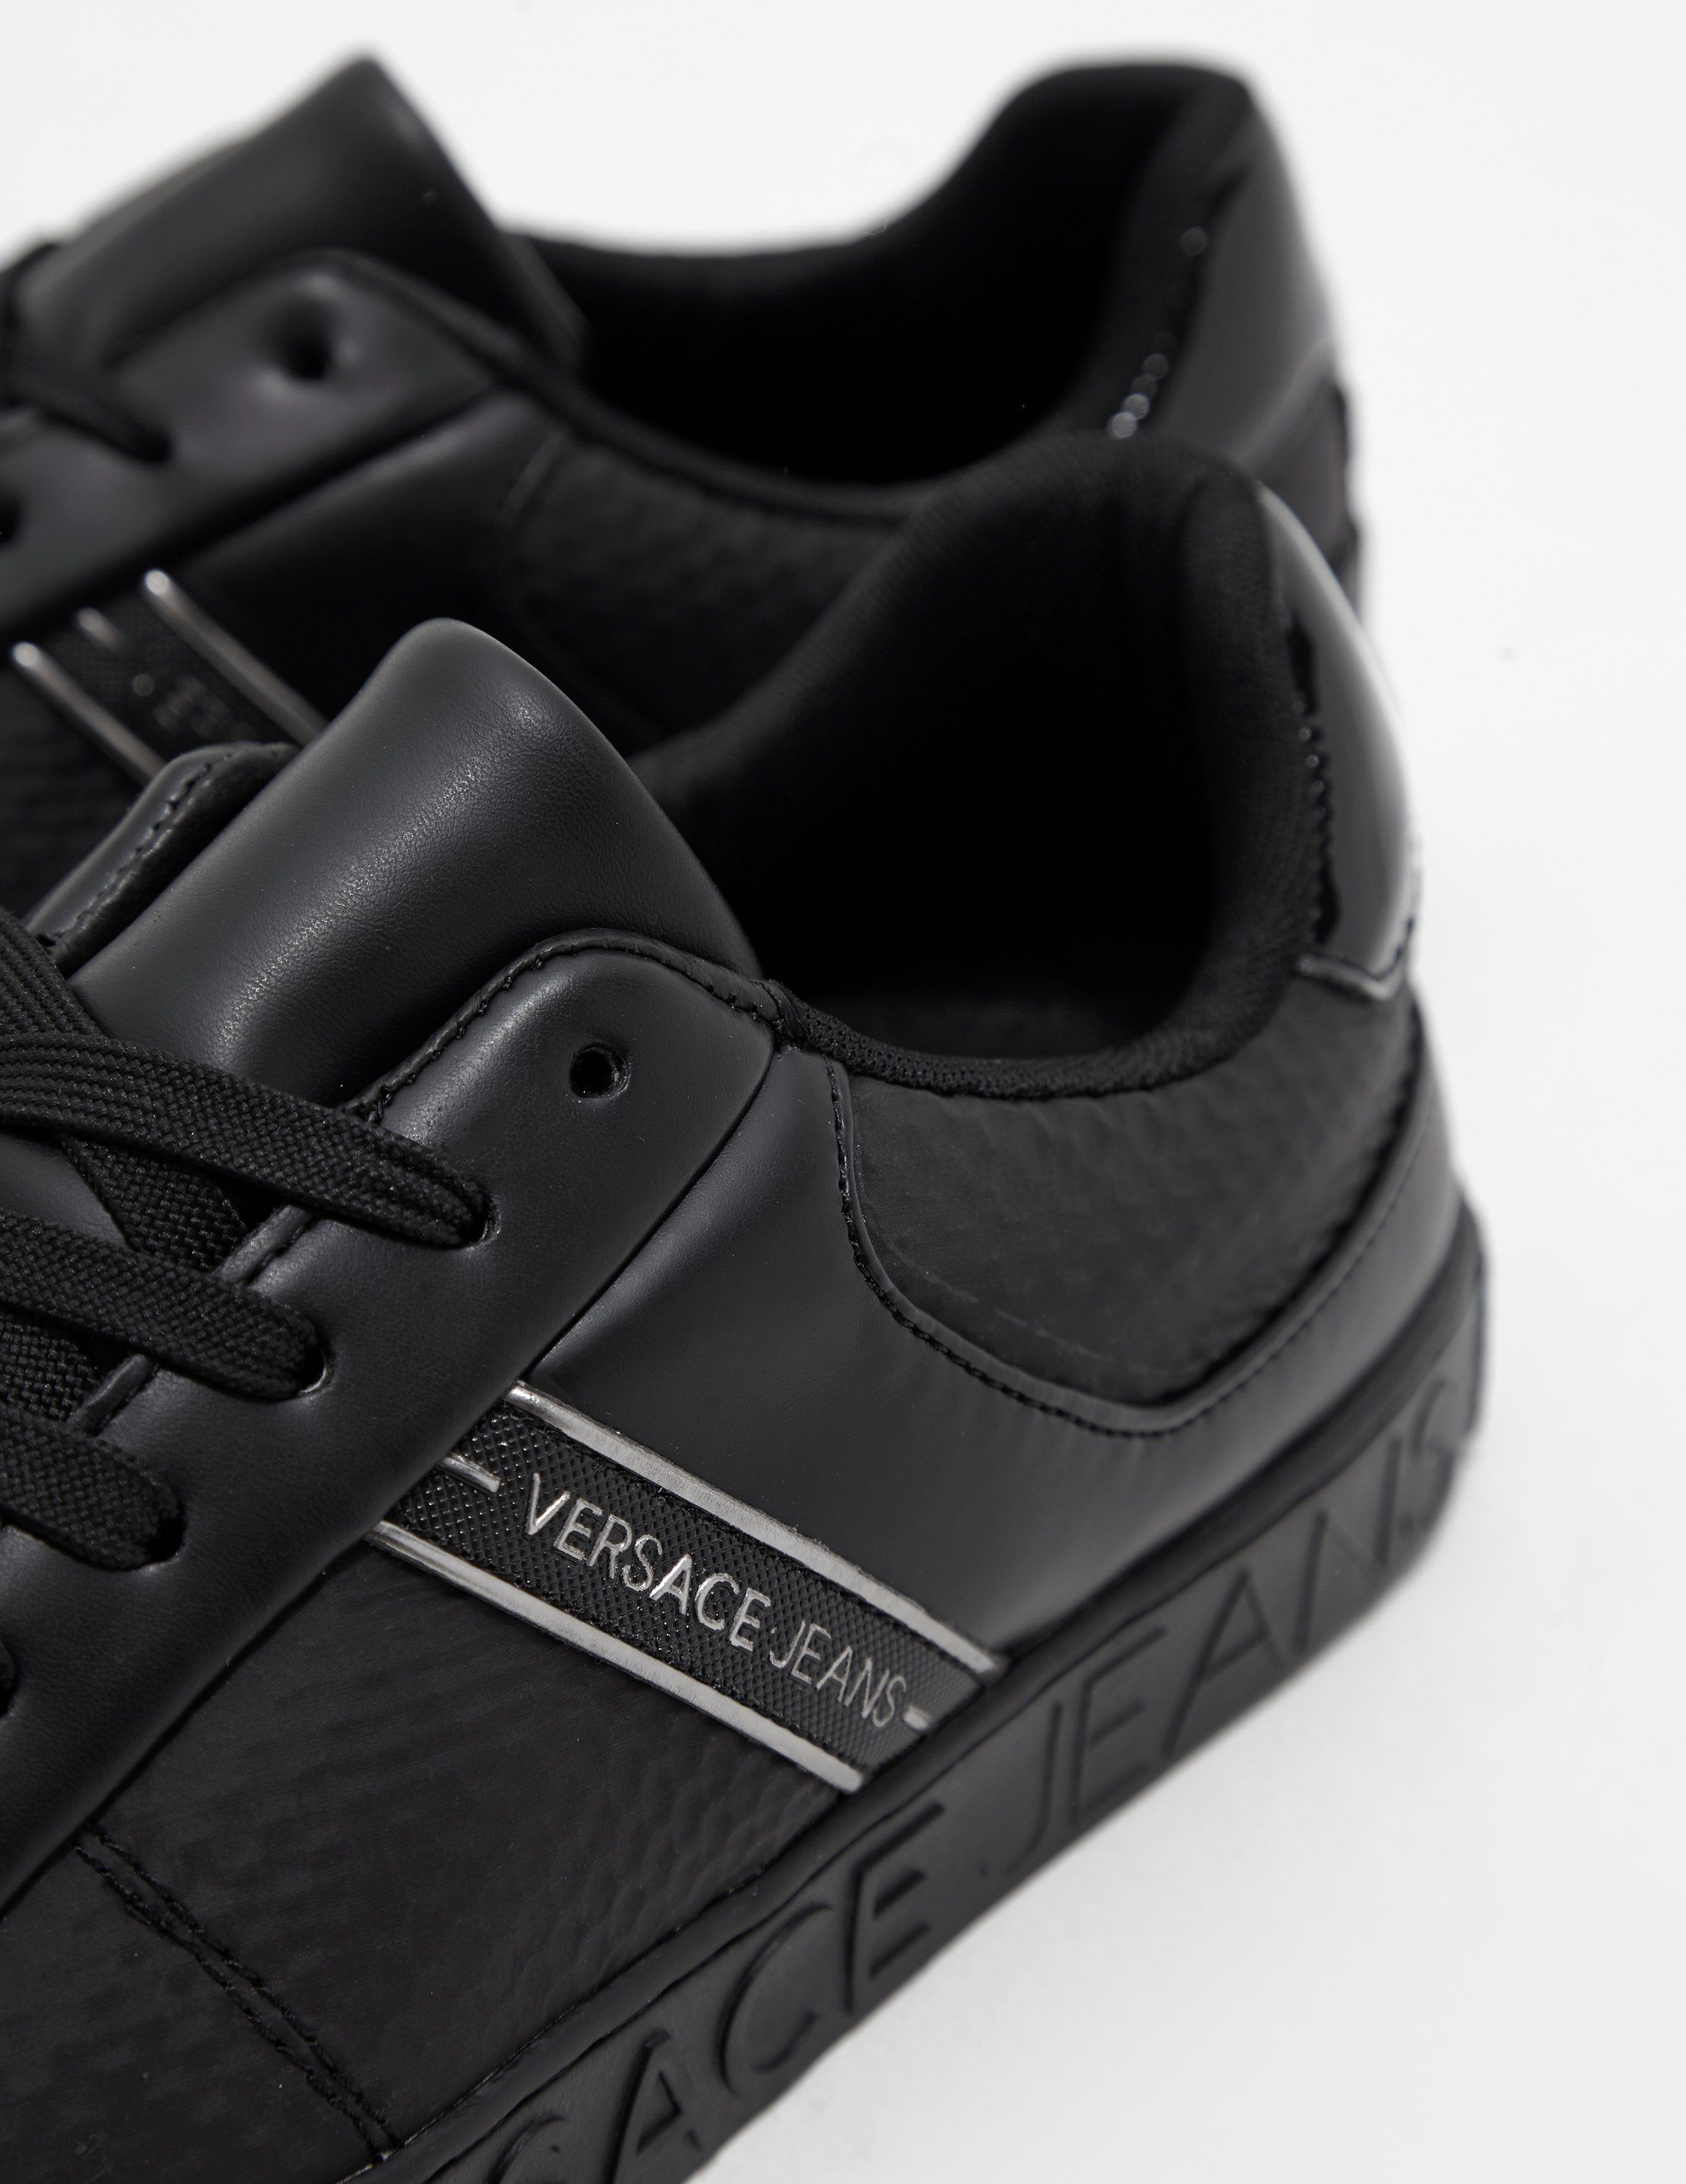 Versace Jeans Court Trainers